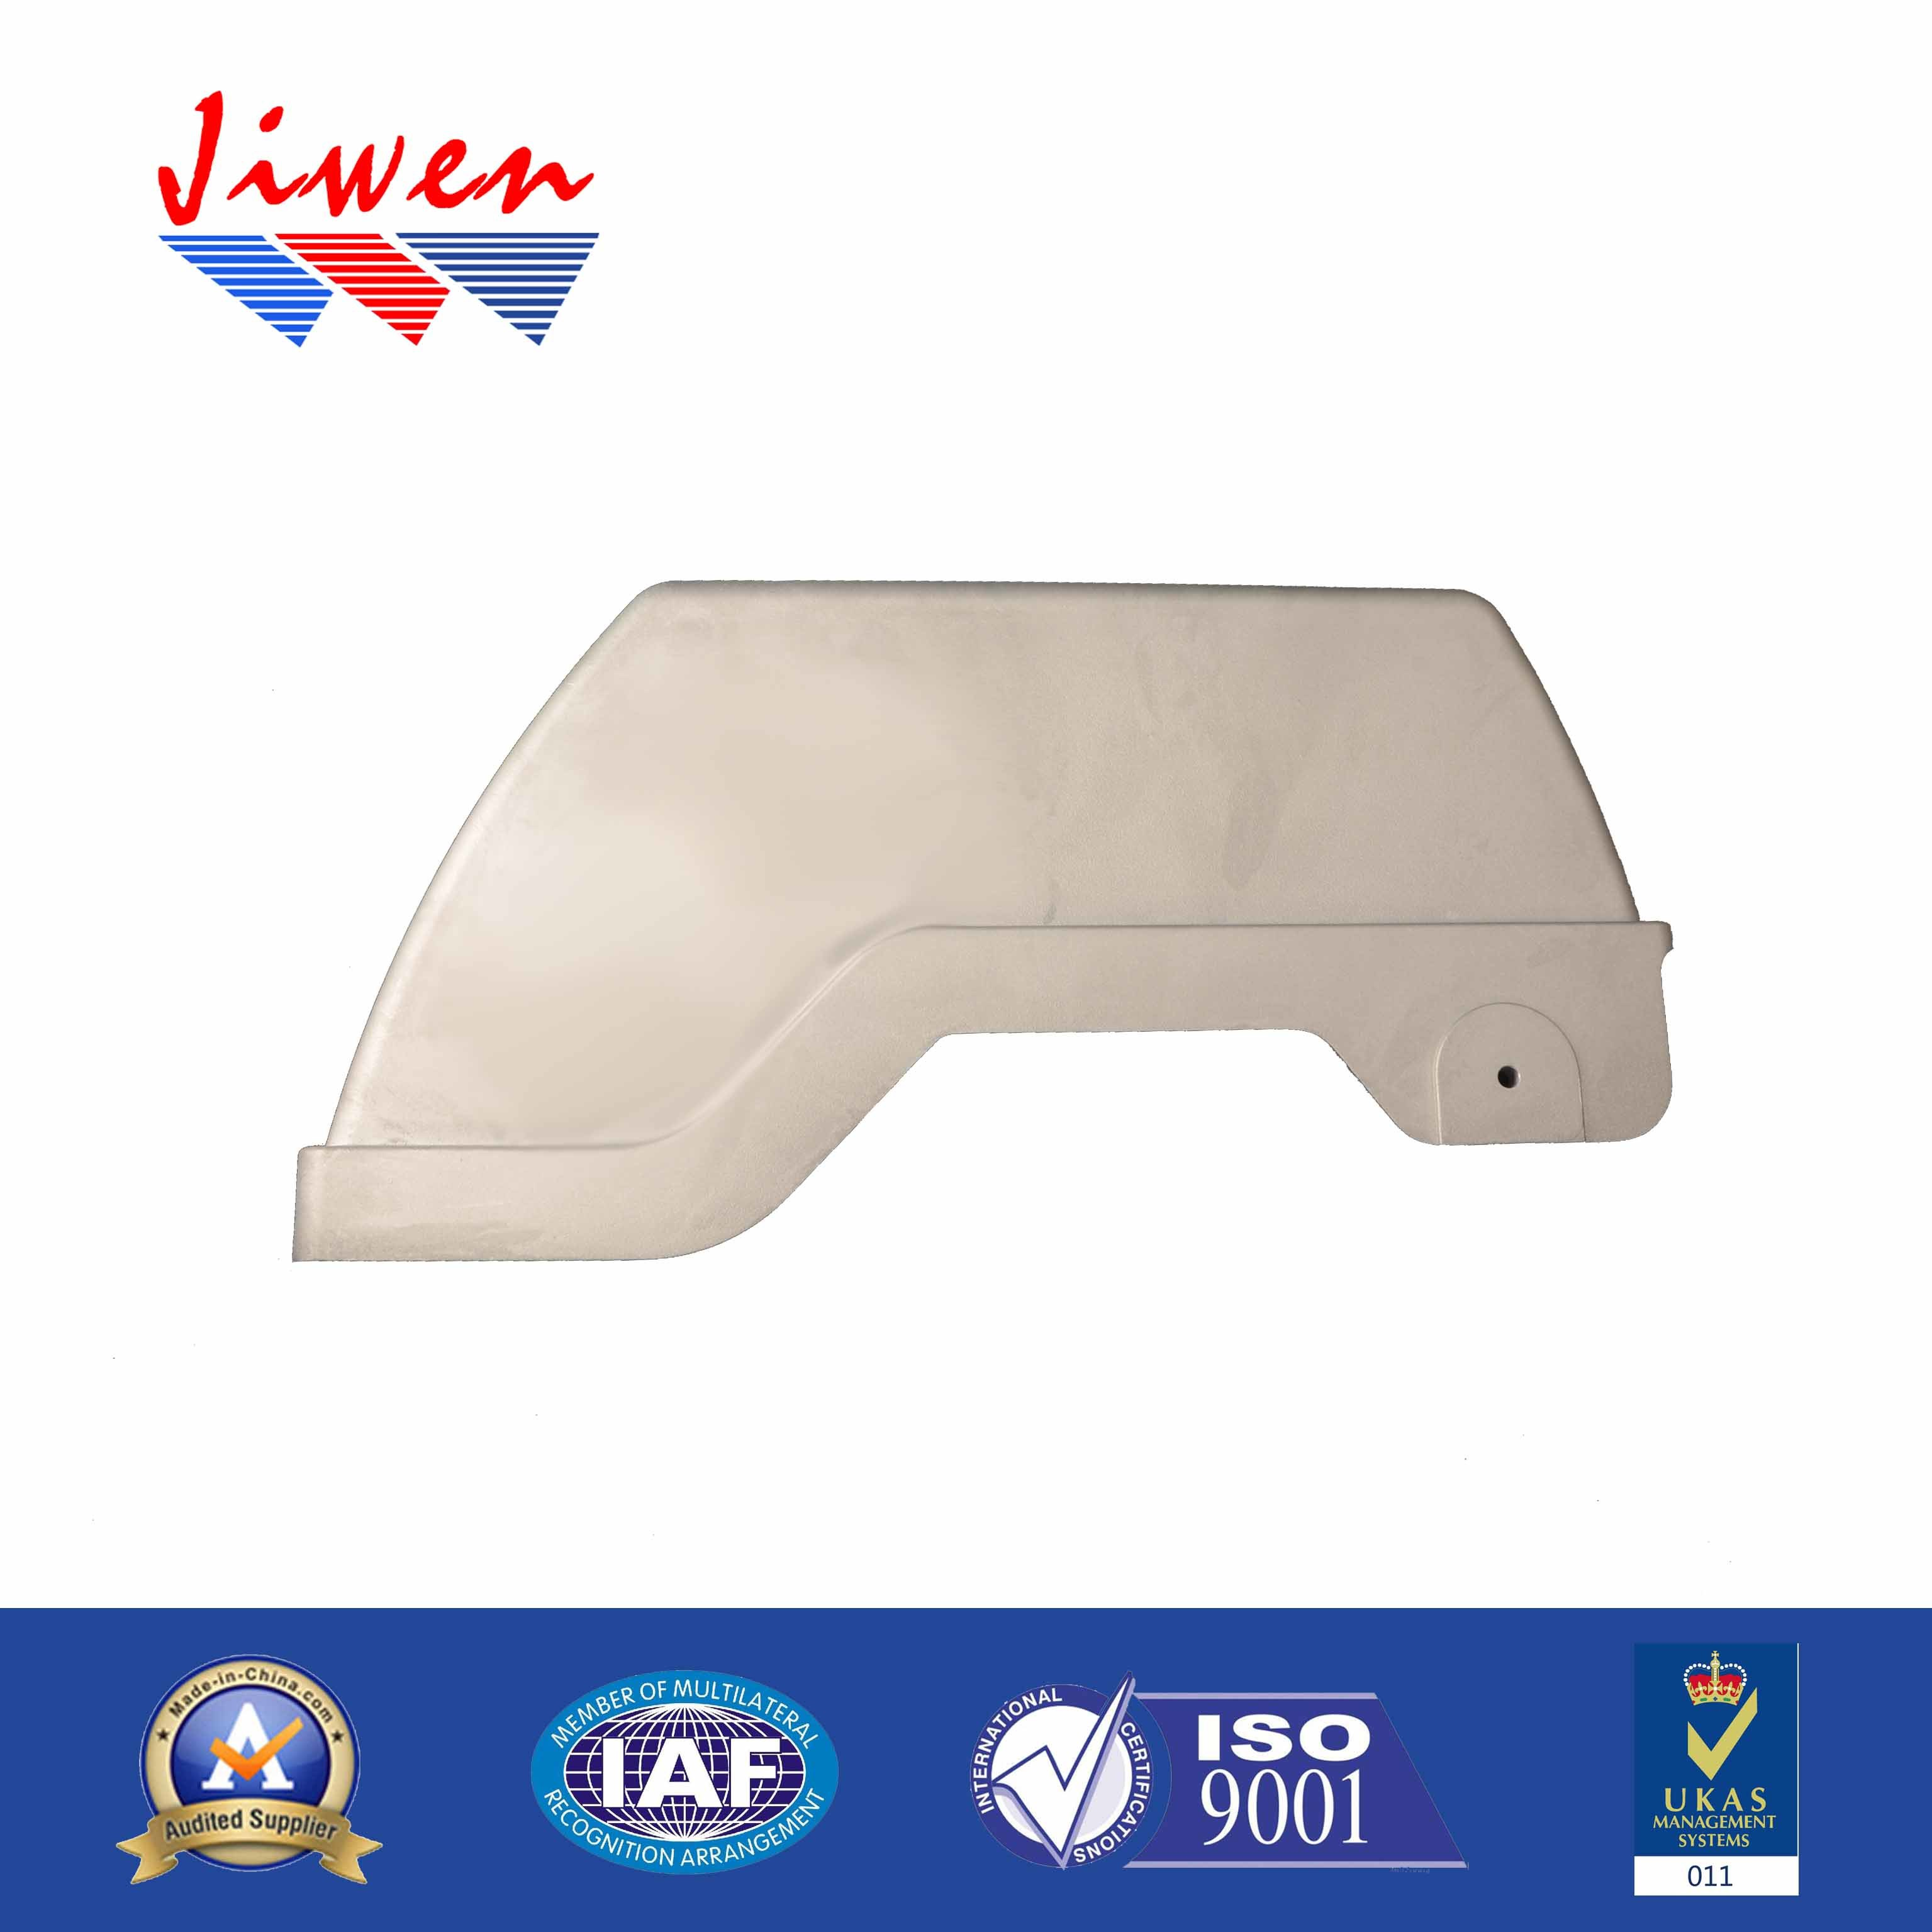 Precision Cast Aluminum Product for Outdoor Oven